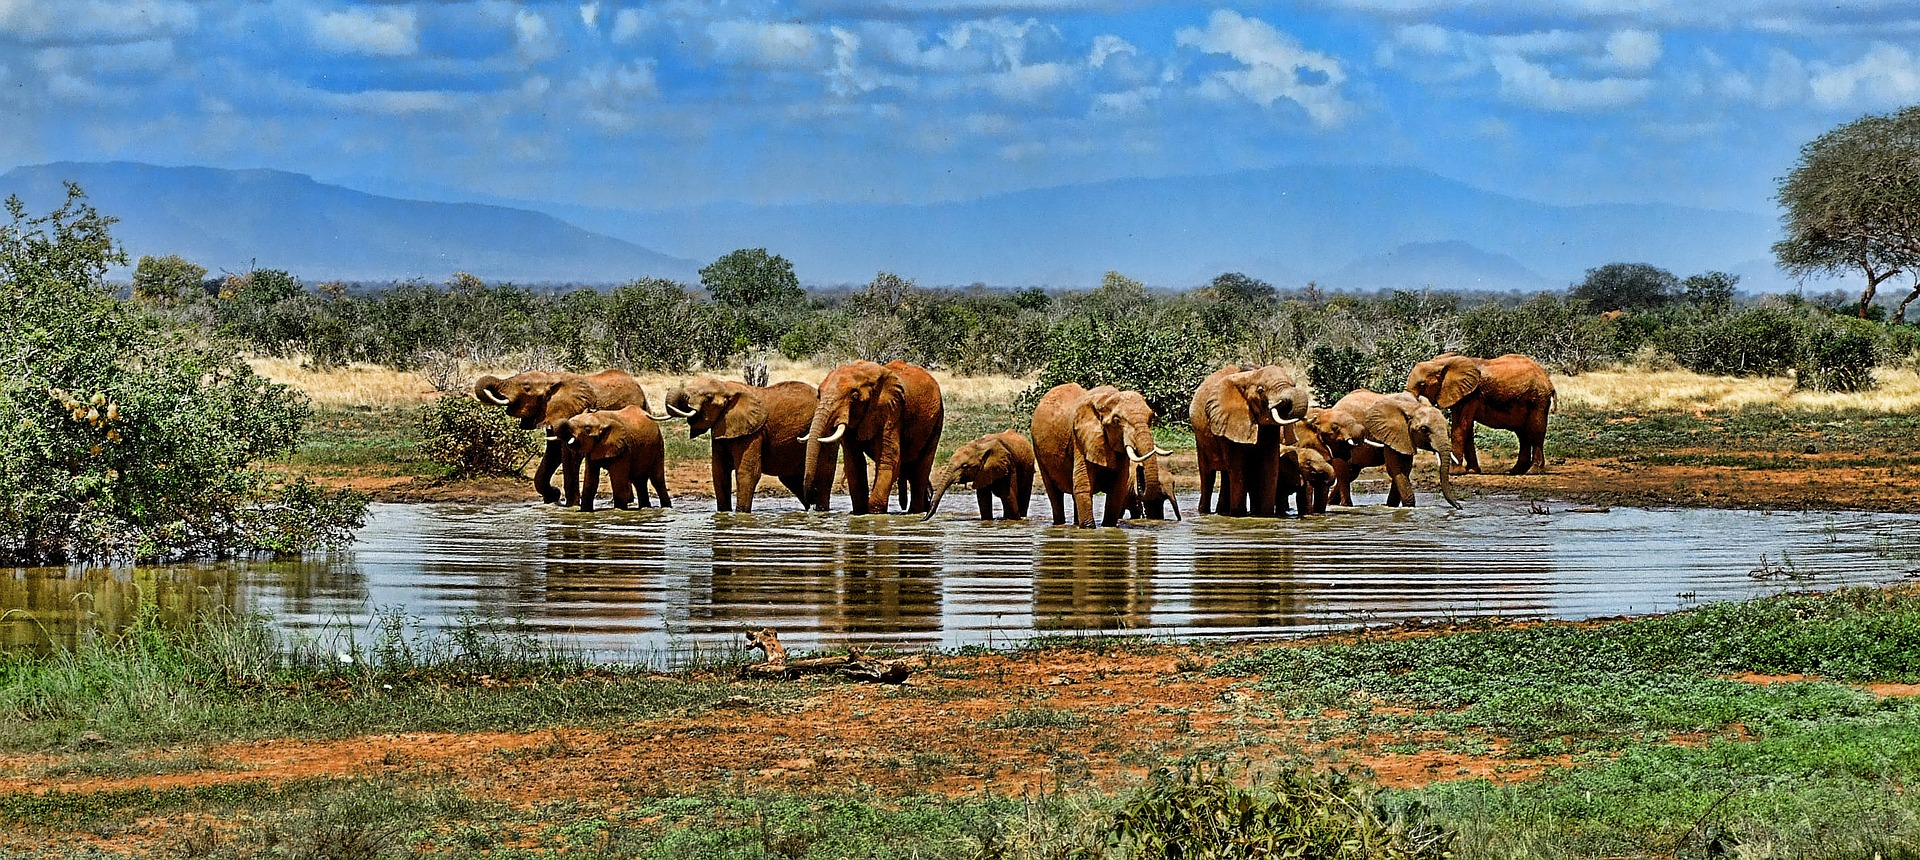 elephant-watering hole - pixabay1065632_